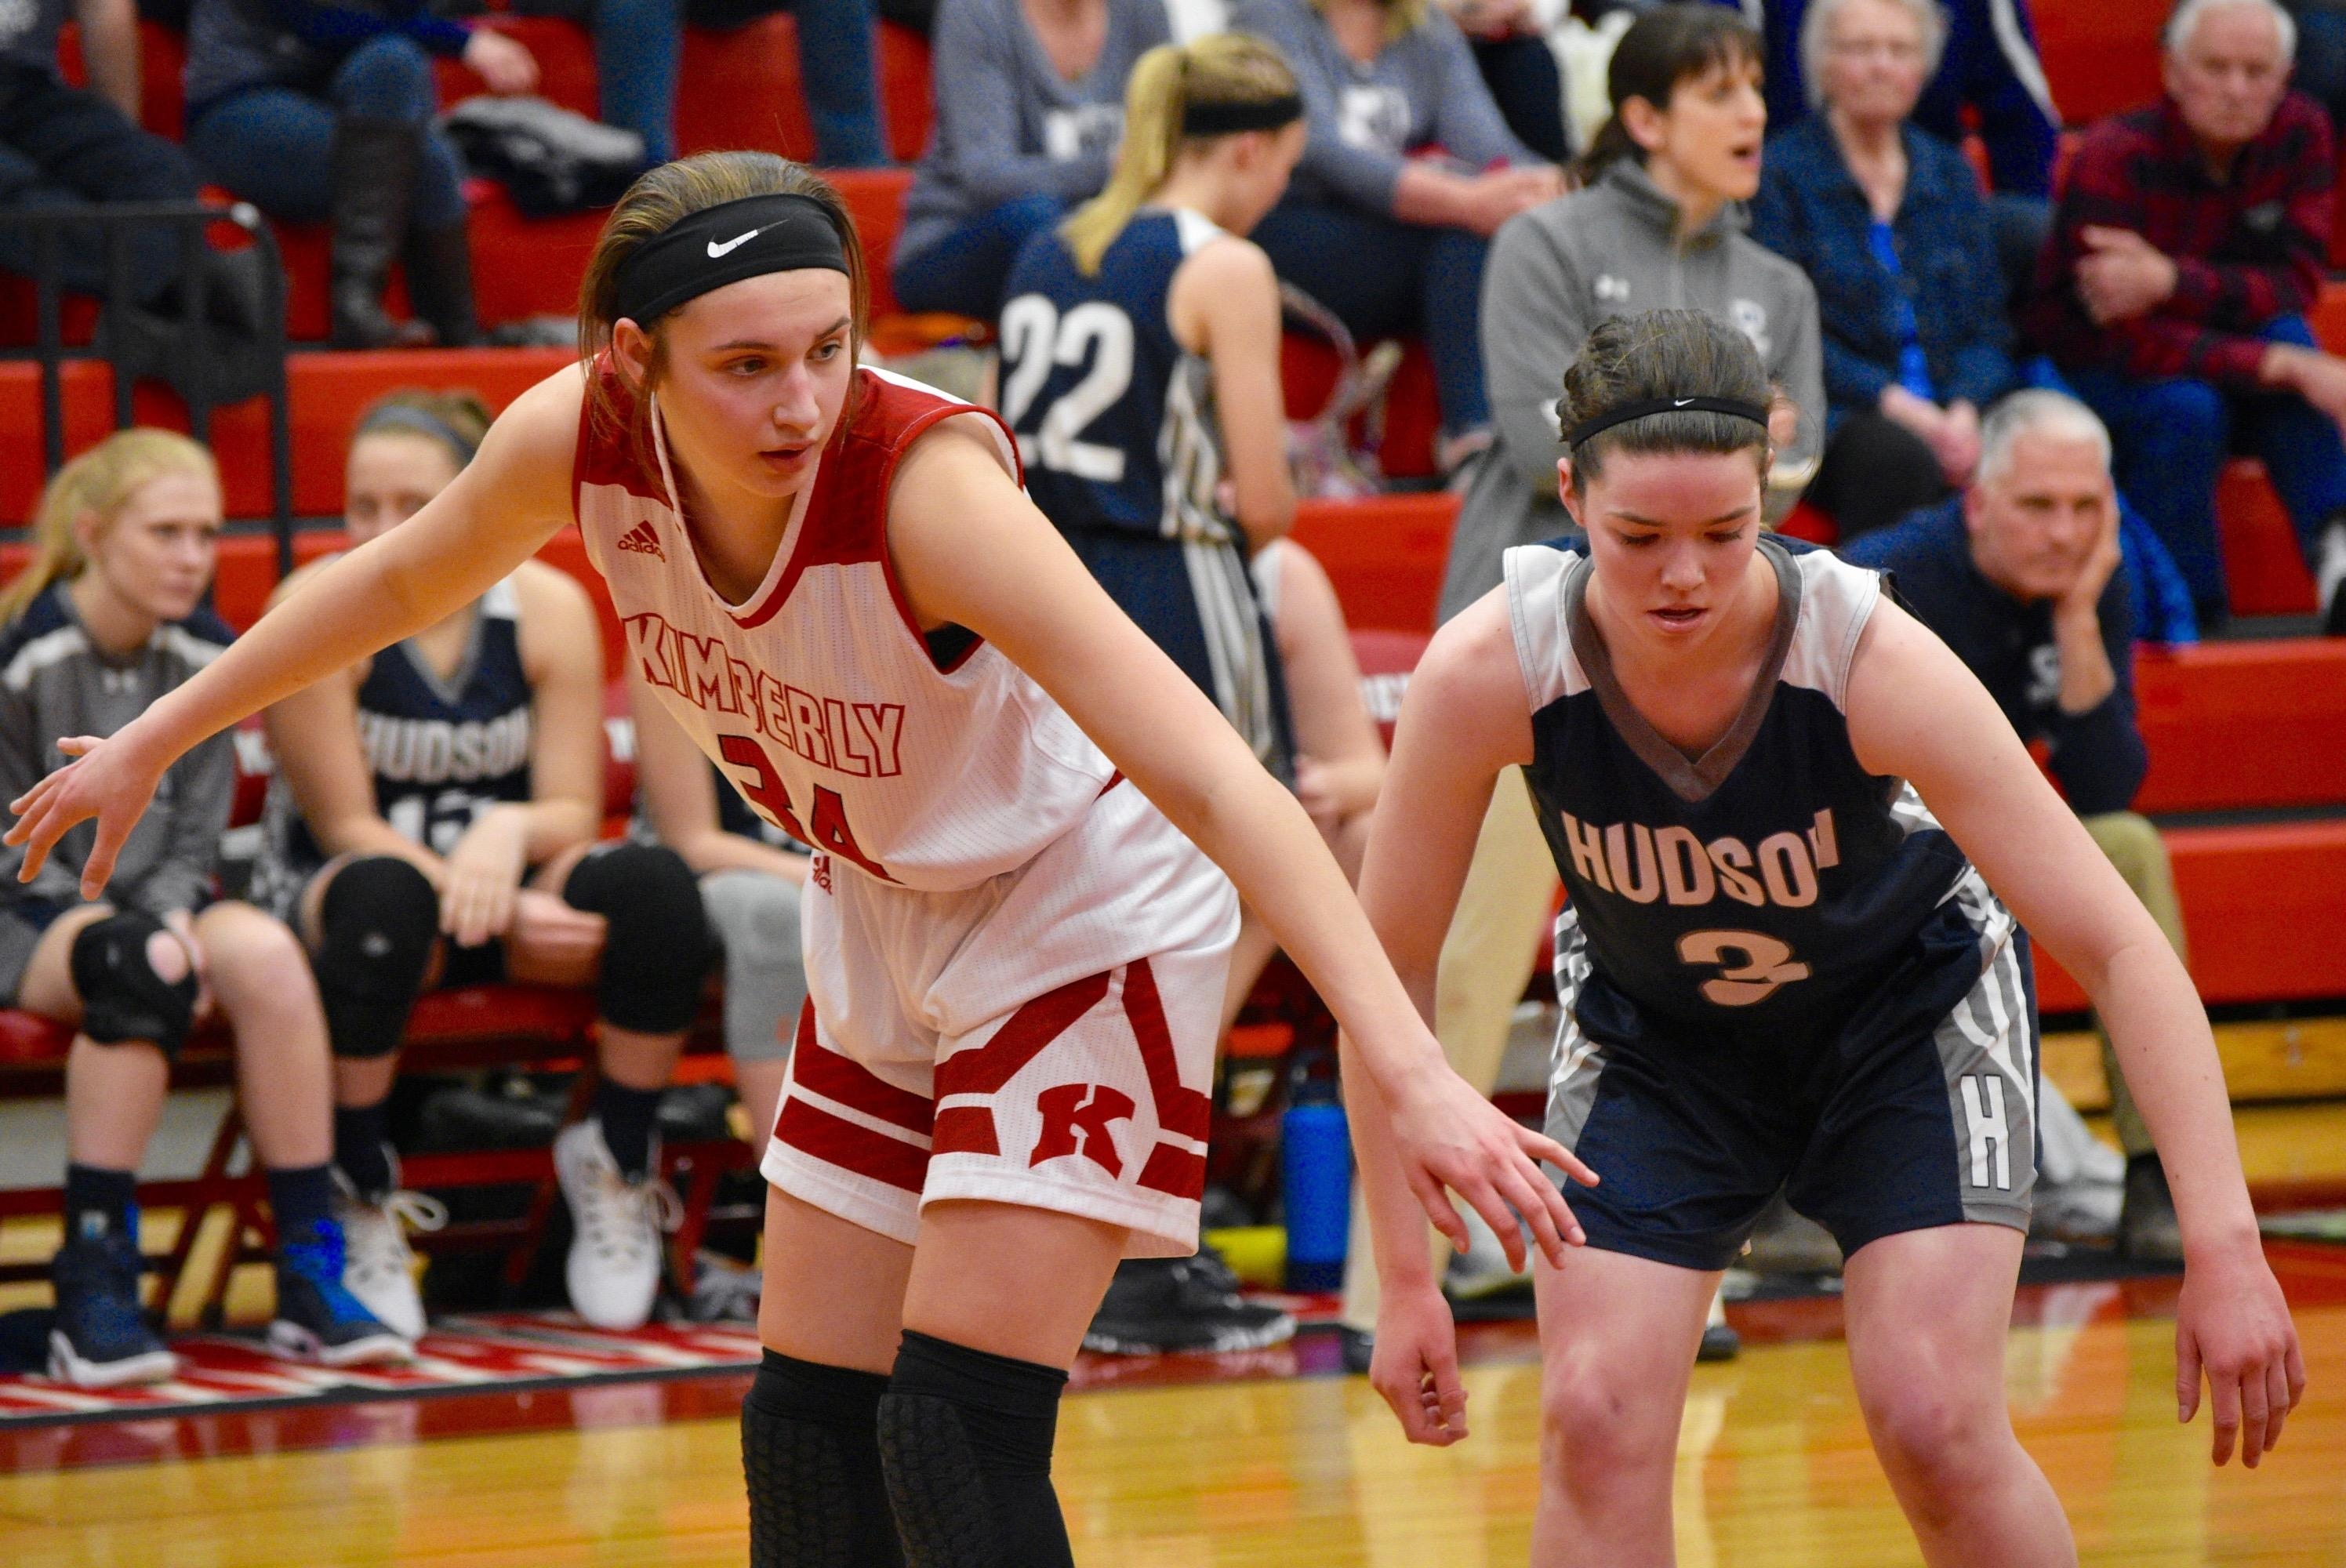 Kimberly defeated Hudson, 57-43, to win a Division 1 regional title on Monday. (Doug Ritchay/WLUK)